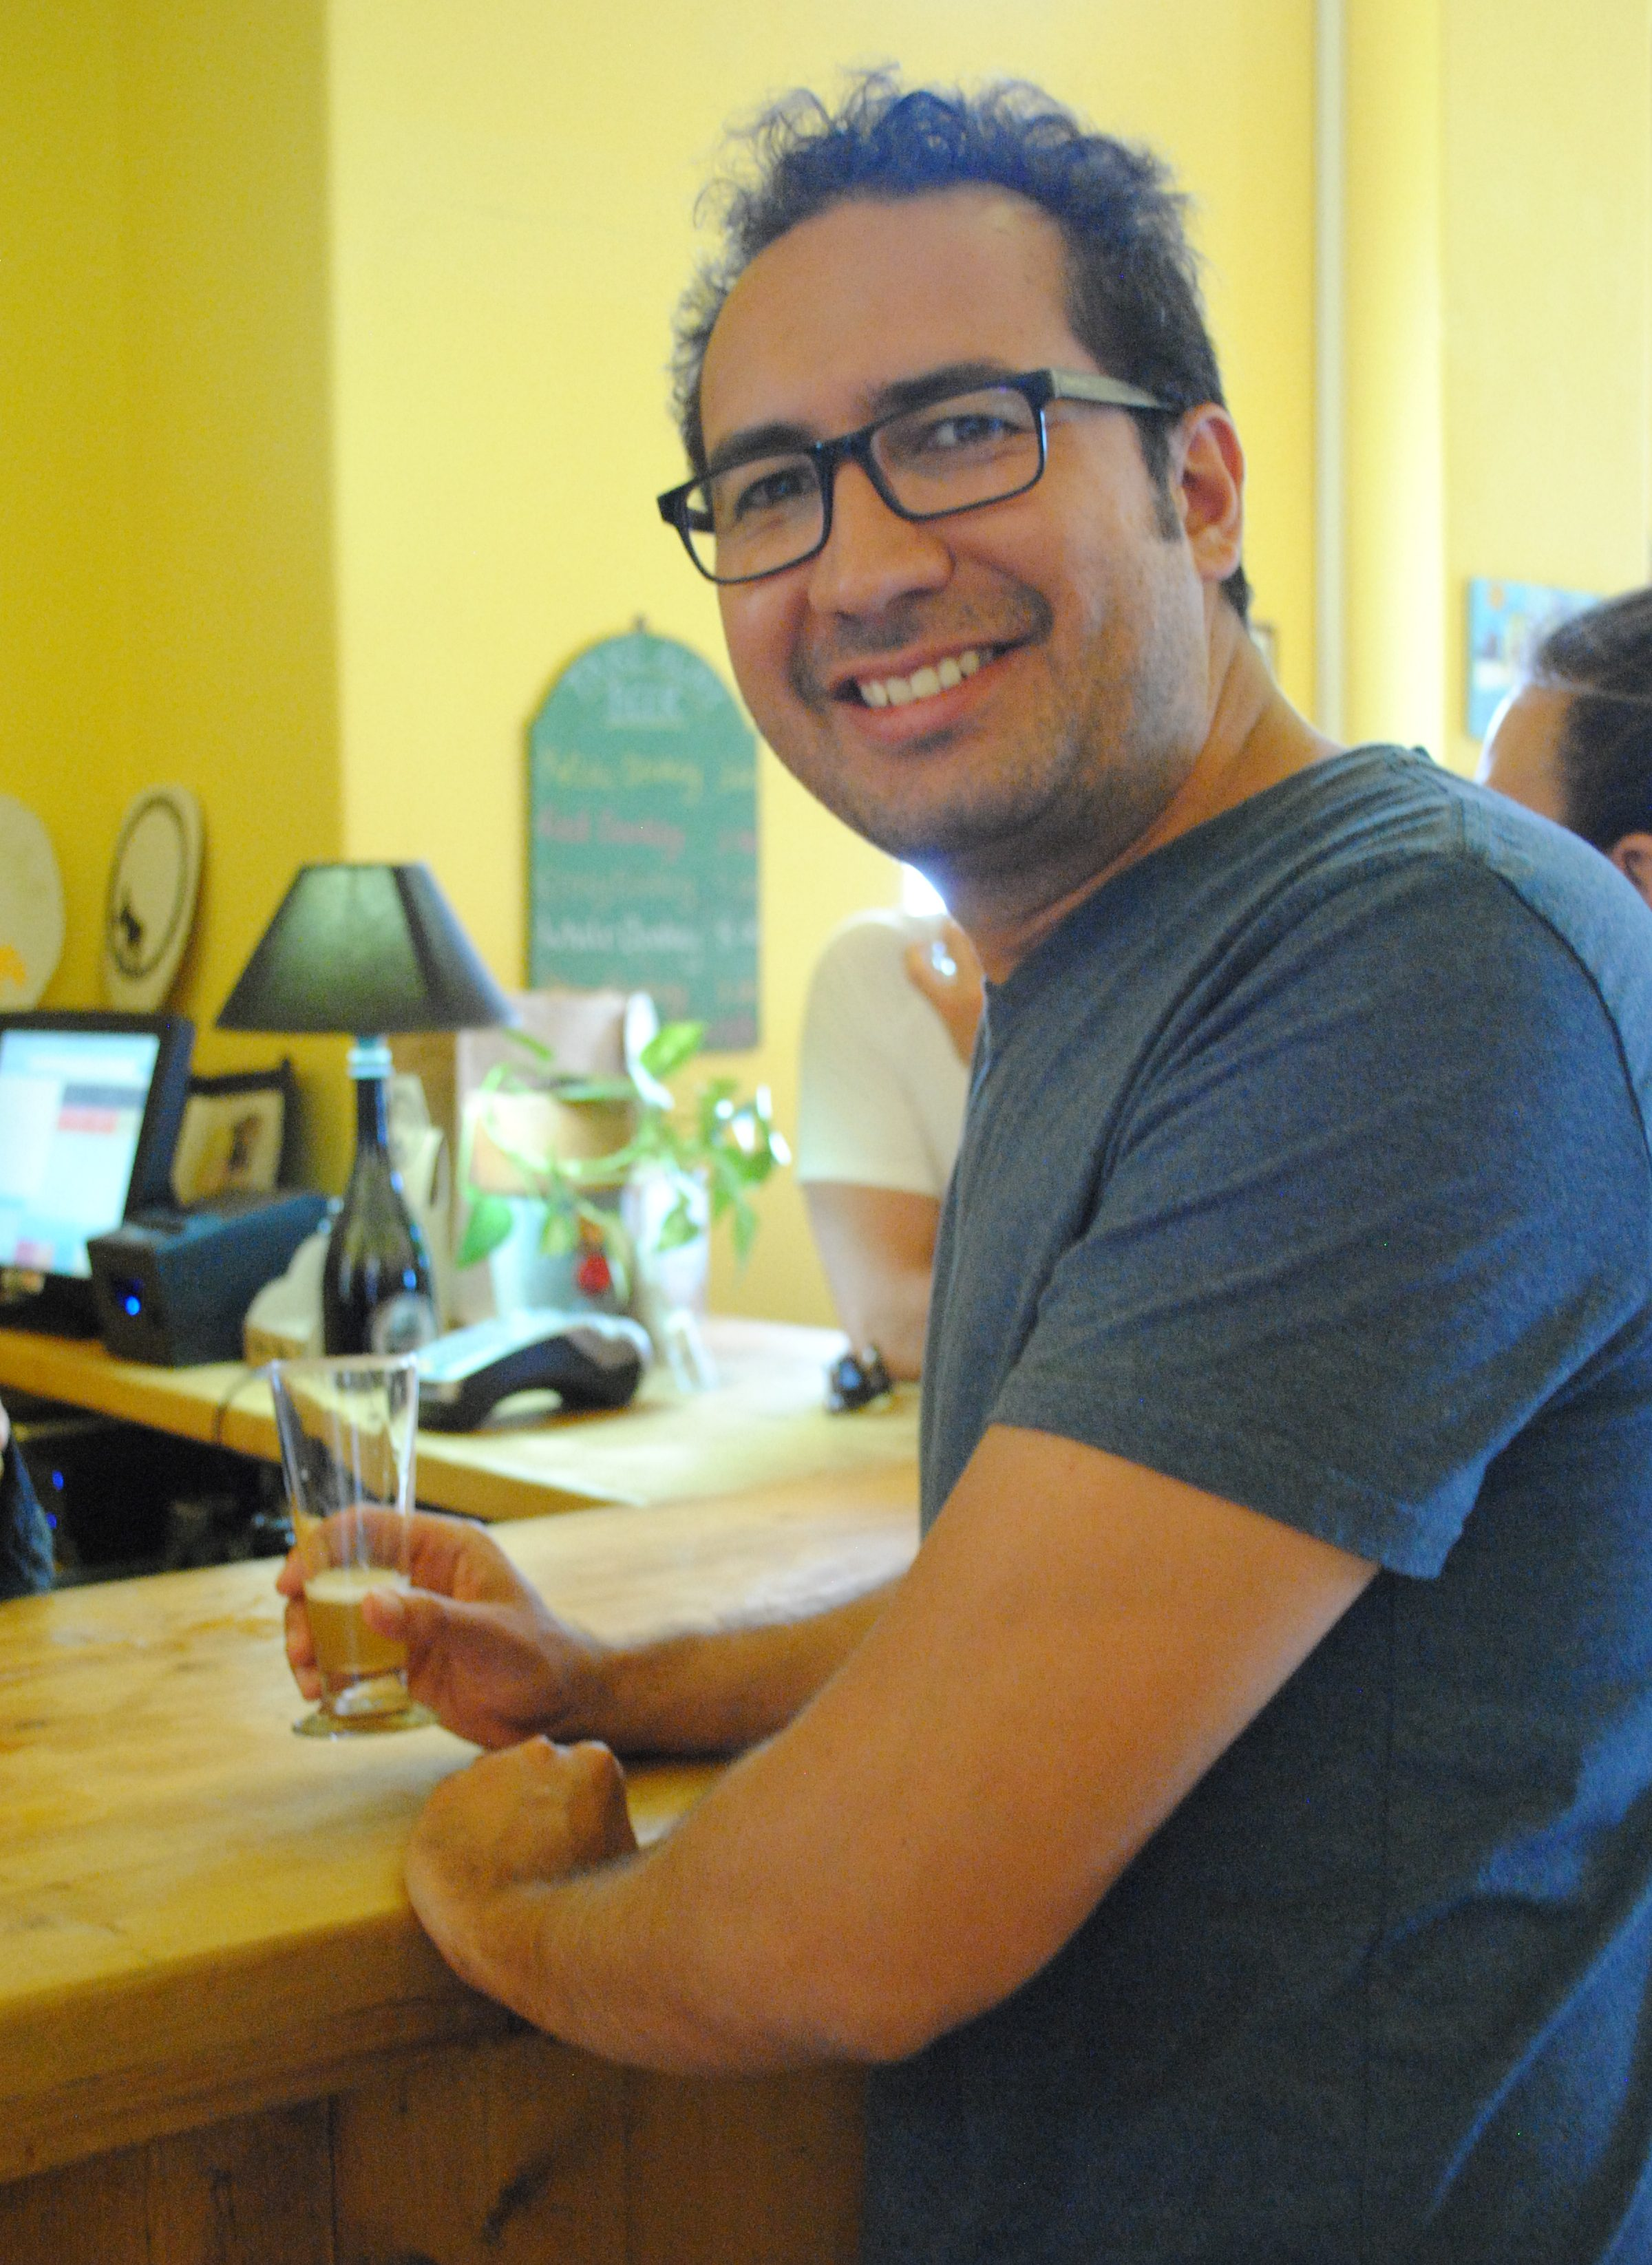 Tasting beer at Santorini Brewing Company